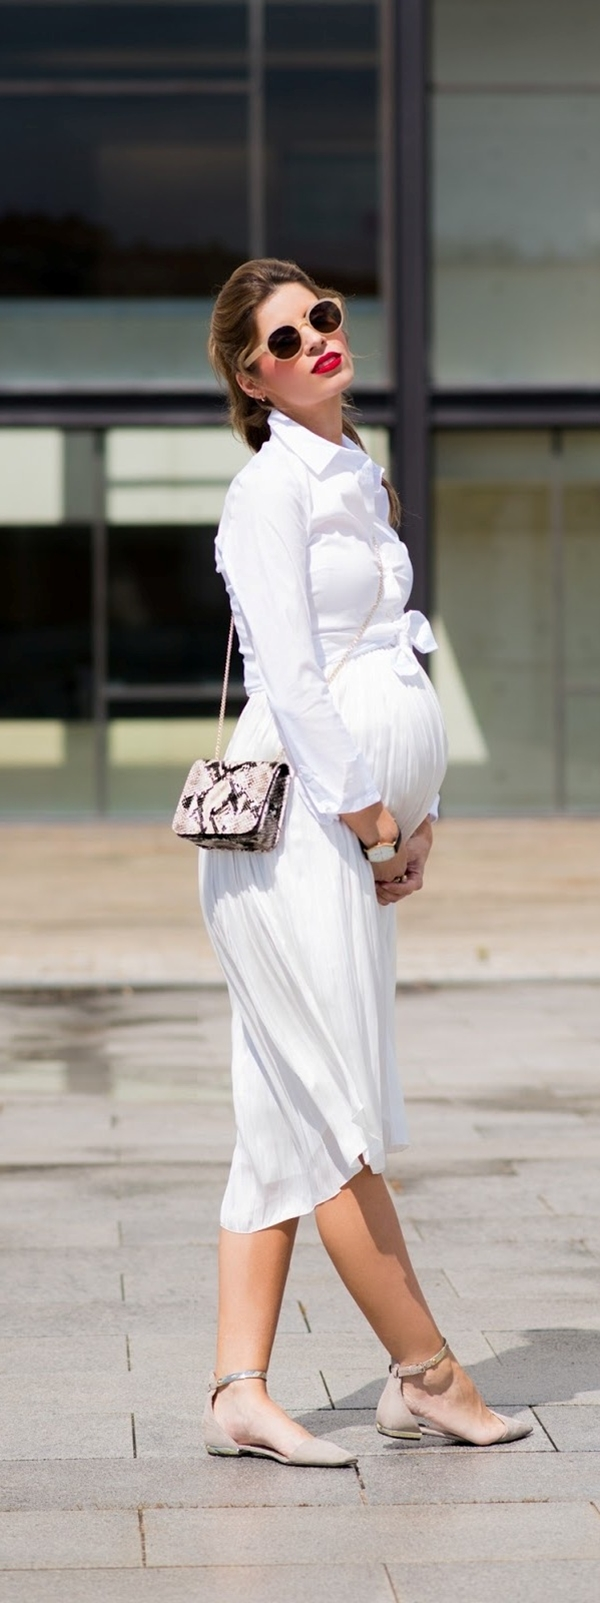 maternity-fashion-outfits-20